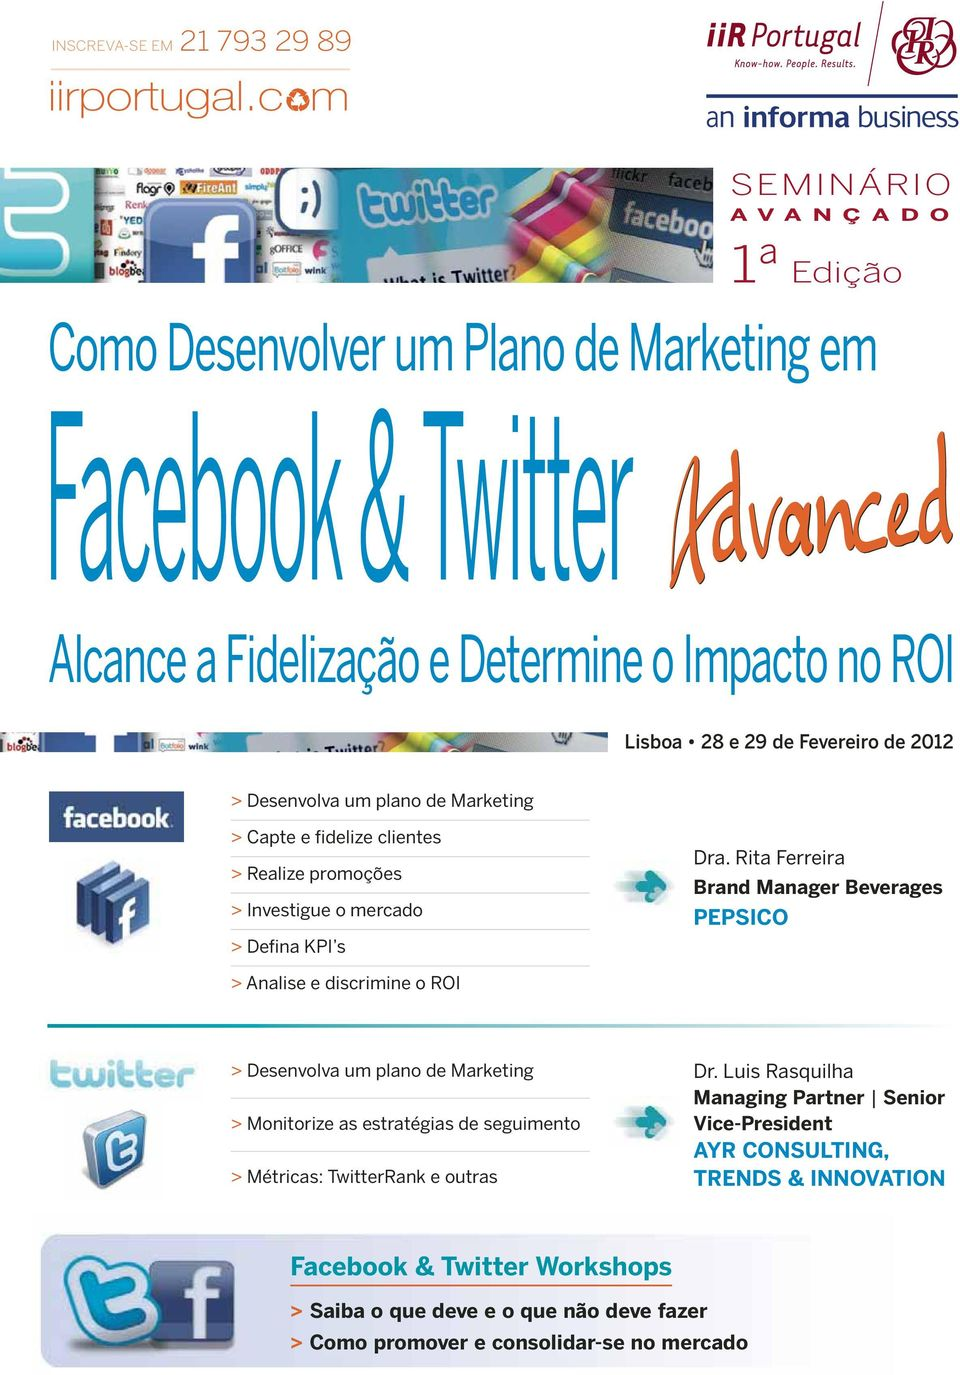 KPI s > Analise e discrimine o ROI > Desenvolva um plano de Marketing > Monitorize as estratégias de seguimento > Métricas: TwitterRank e outras Managing Partner